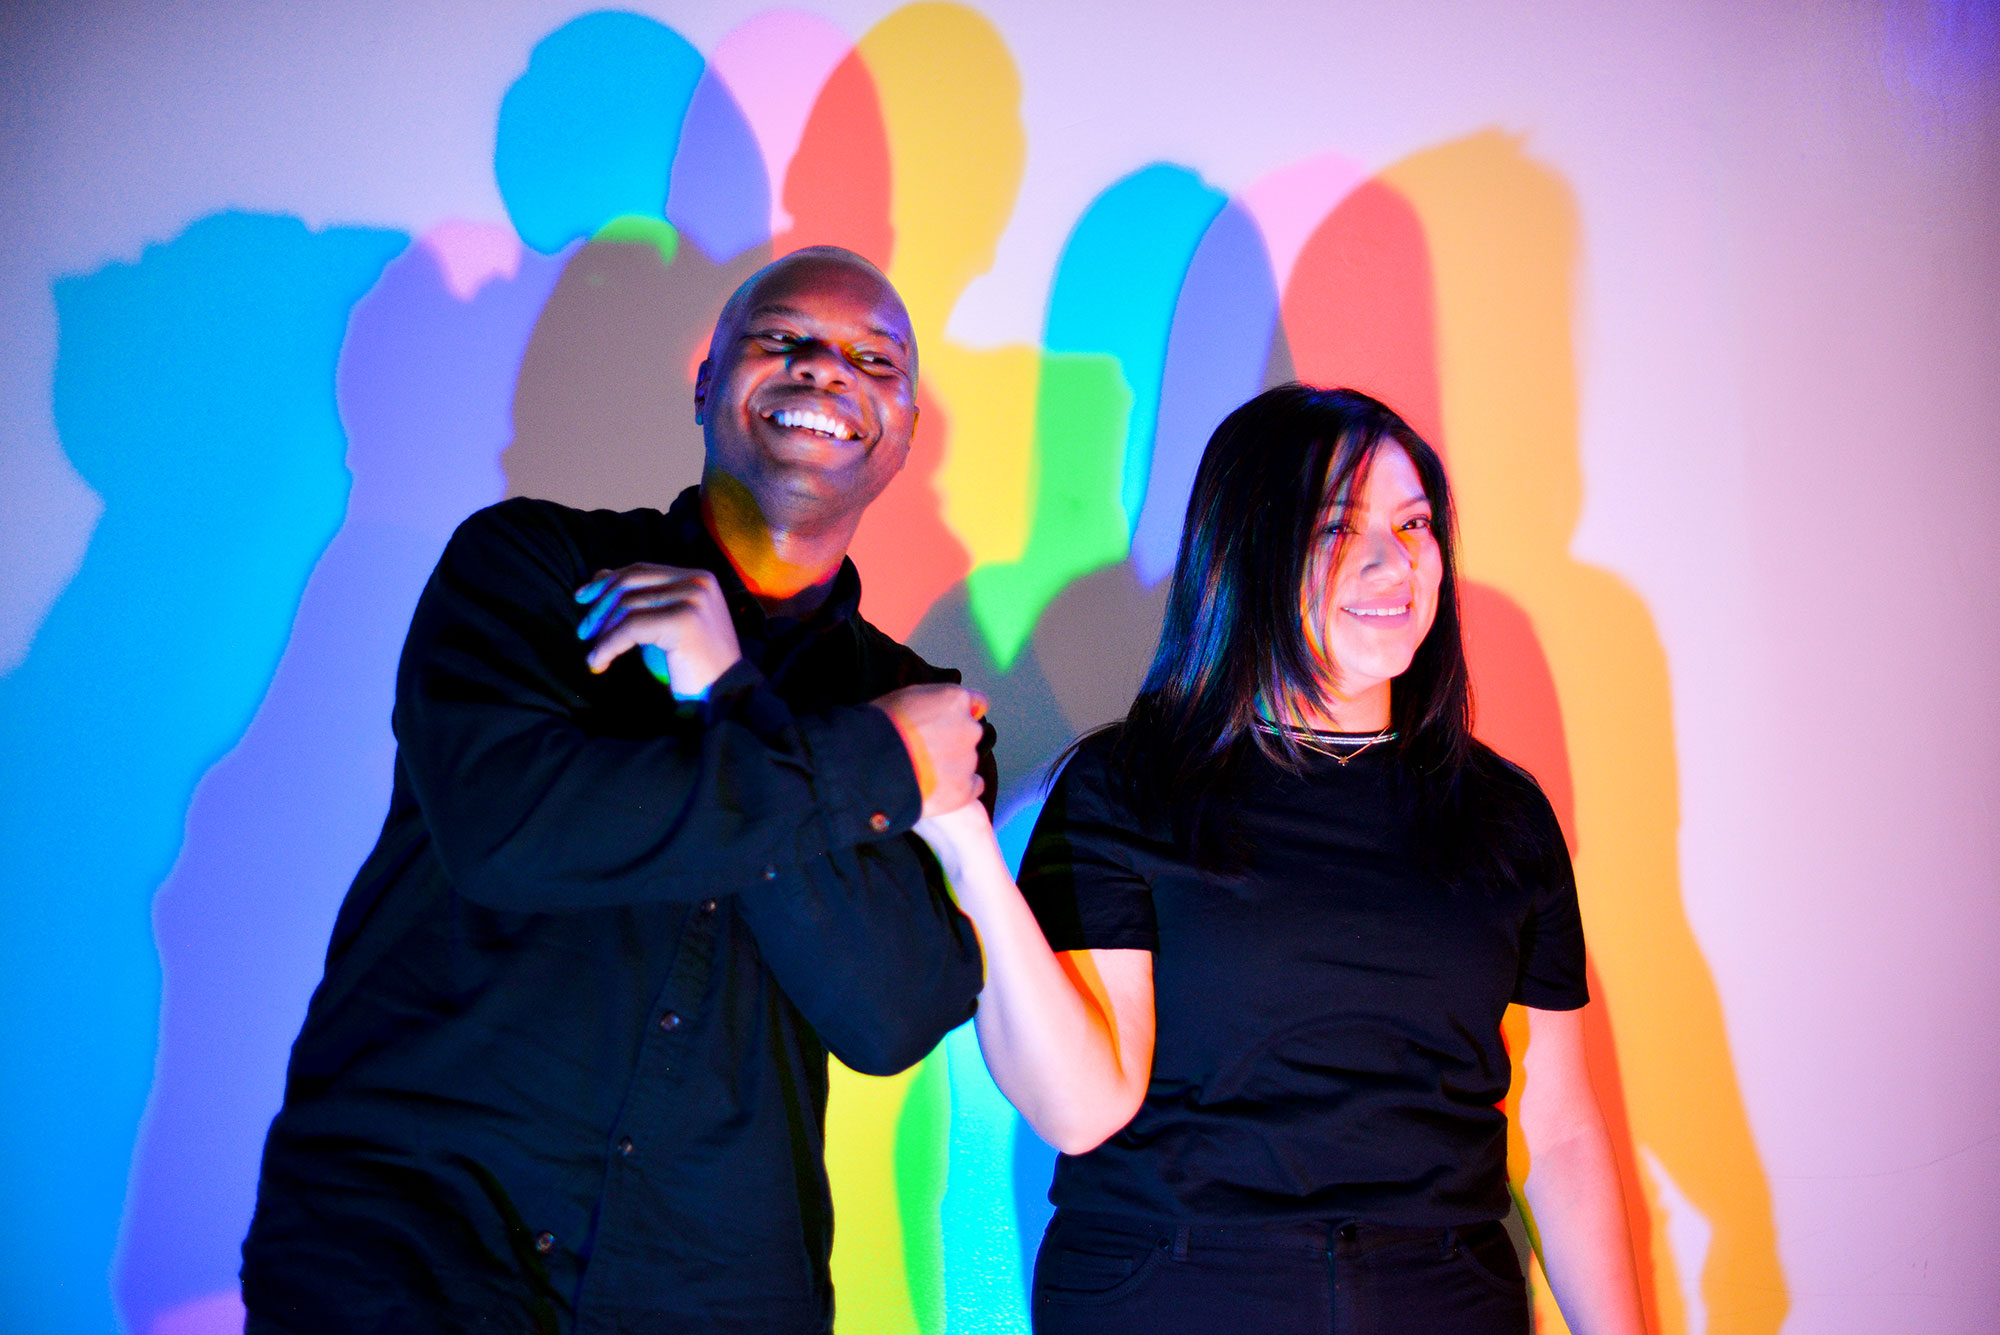 A man and woman with multi-colored shadows cast on the wall behind them.